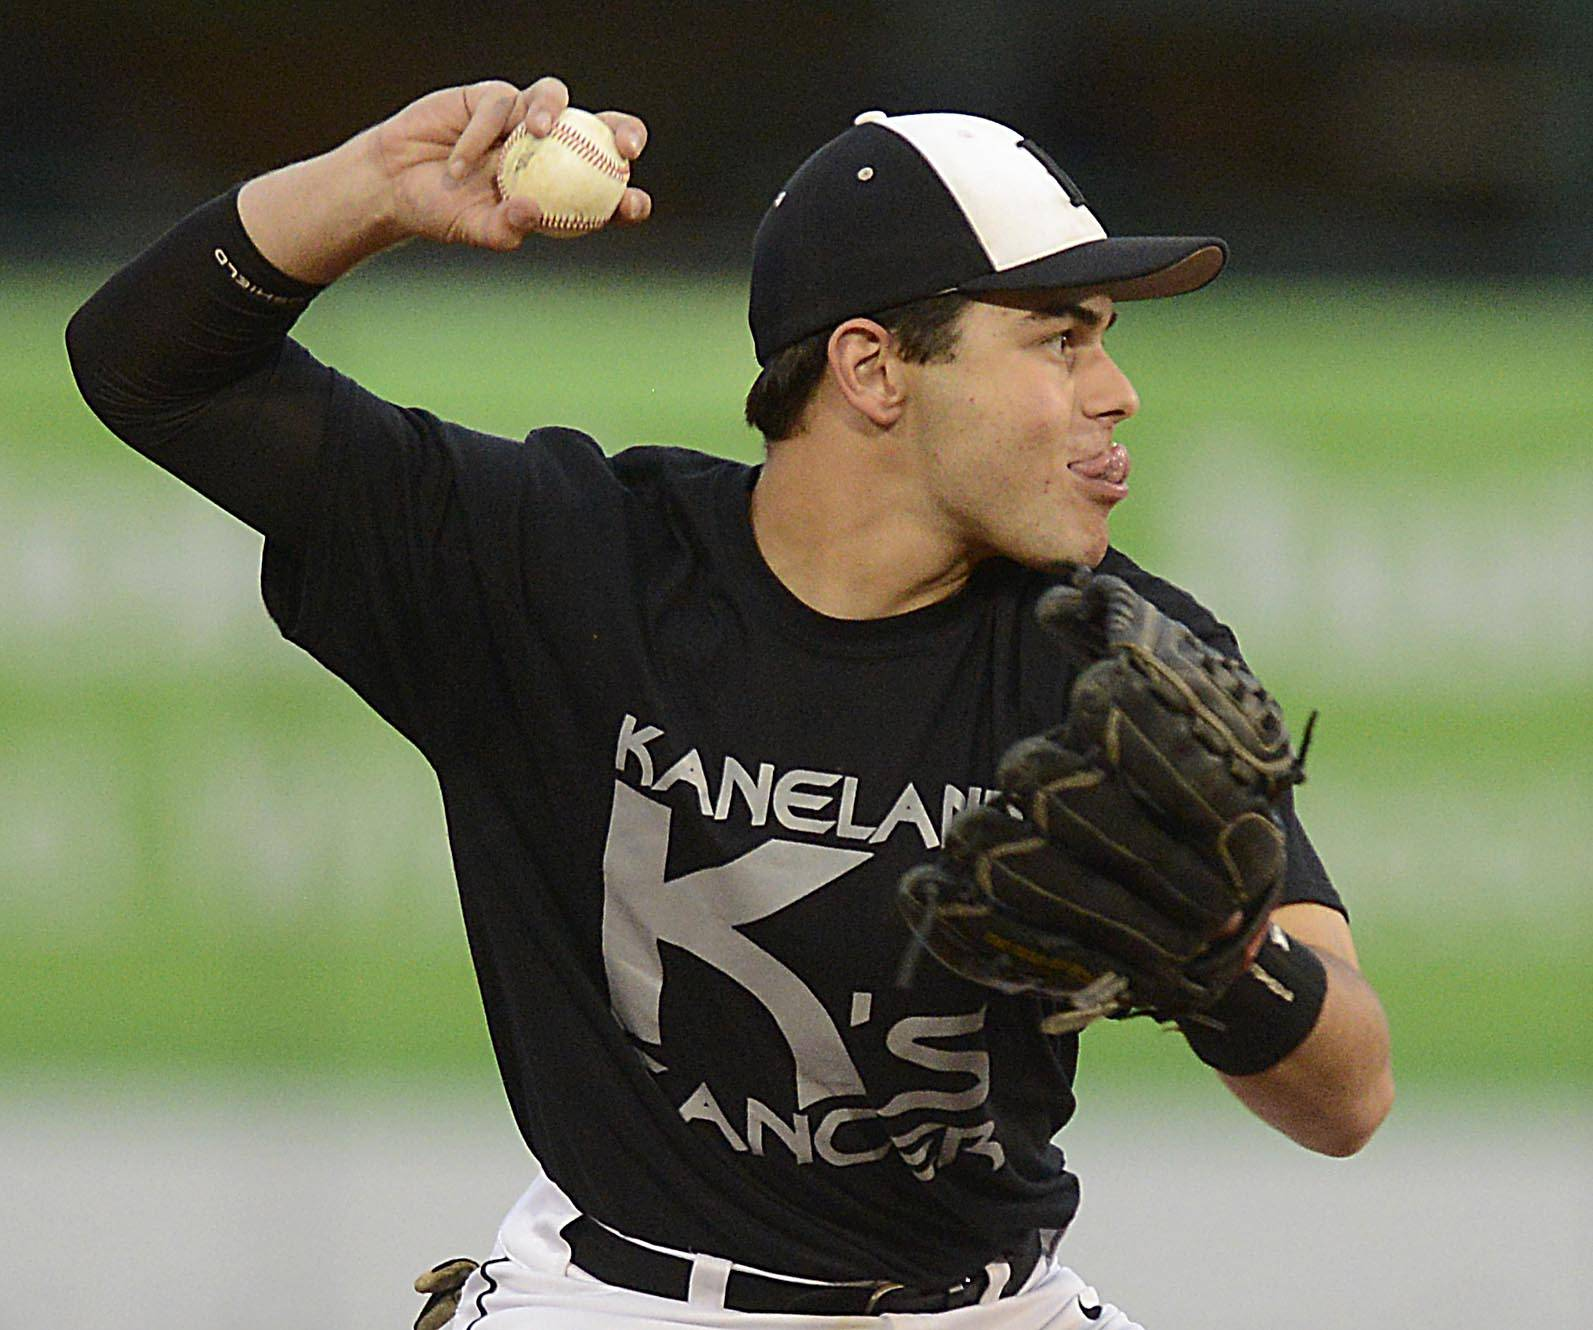 Kaneland's Joe Panico sticks out his tongue as he throws out Batavia's Kyle Niemiec Monday at Fifth Third Ballpark in Geneva.